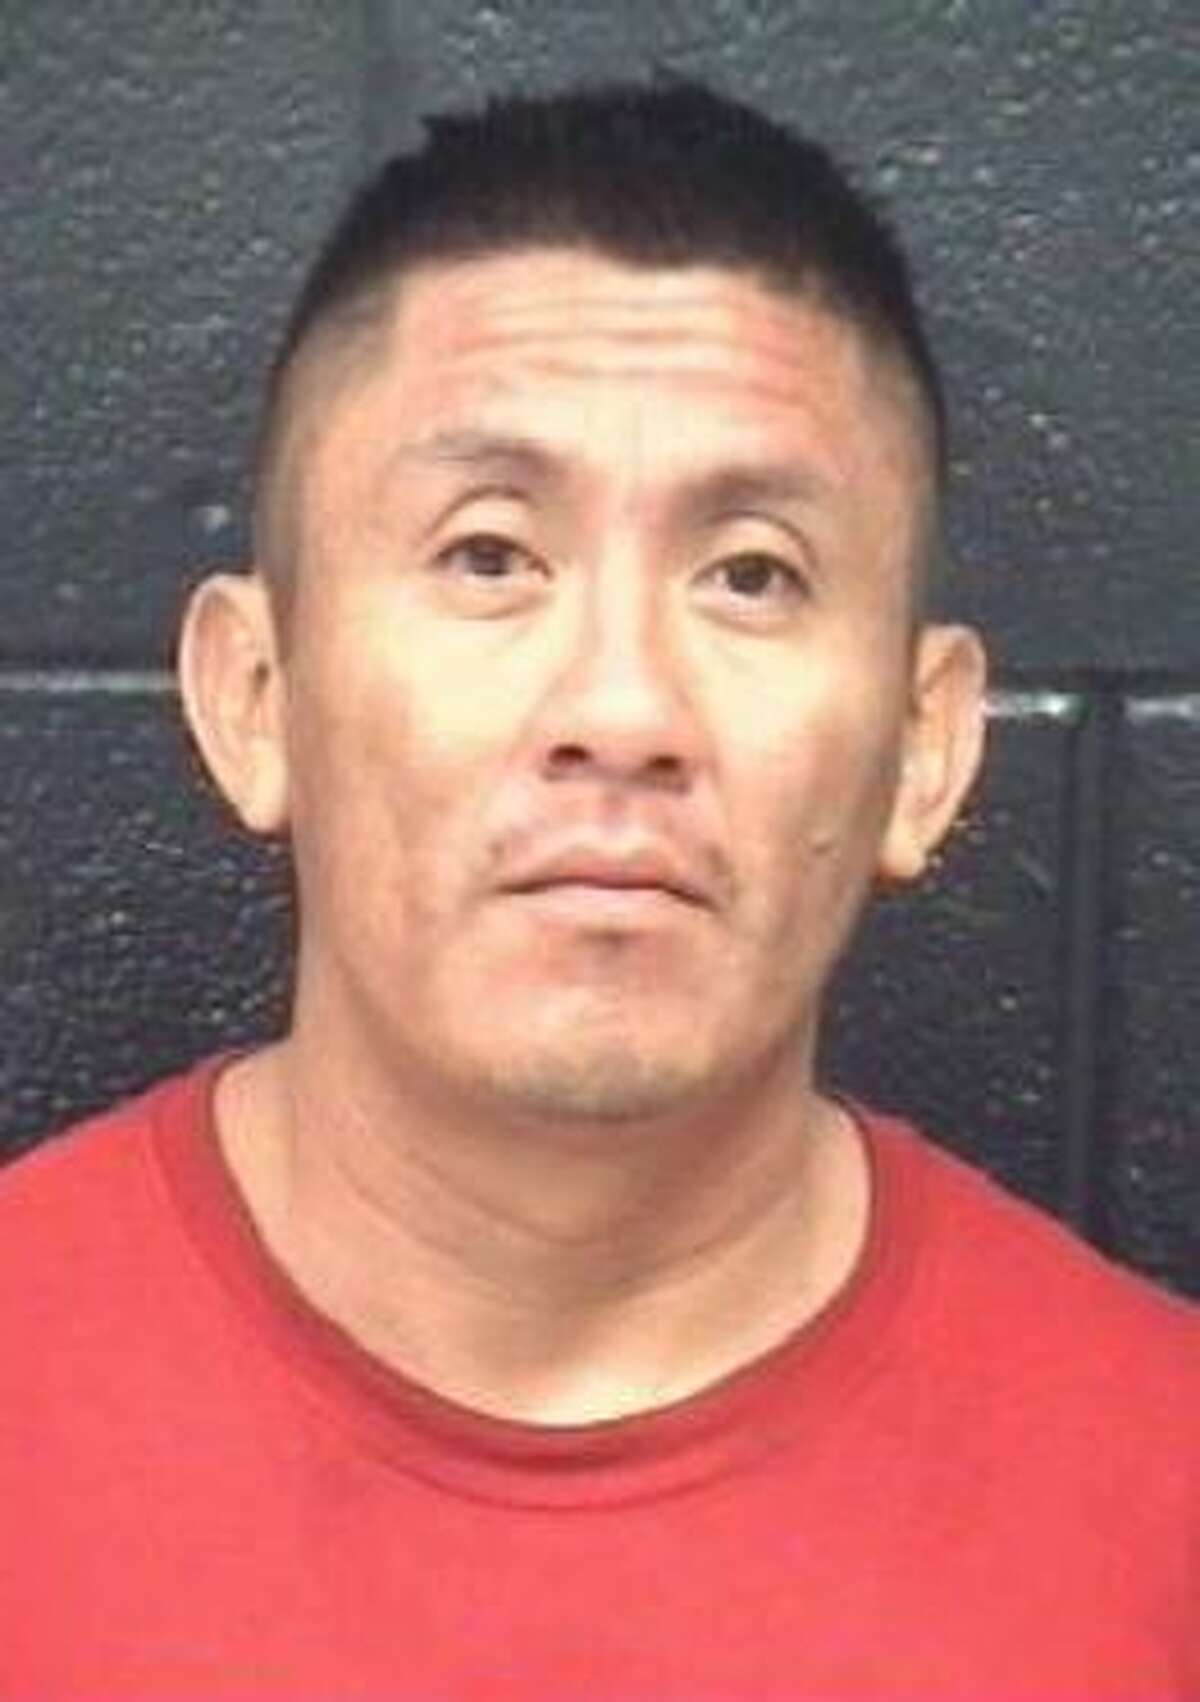 Santiago Che was charged with driving while intoxicated with a blood alcohol content greater than or equal to 0.15.